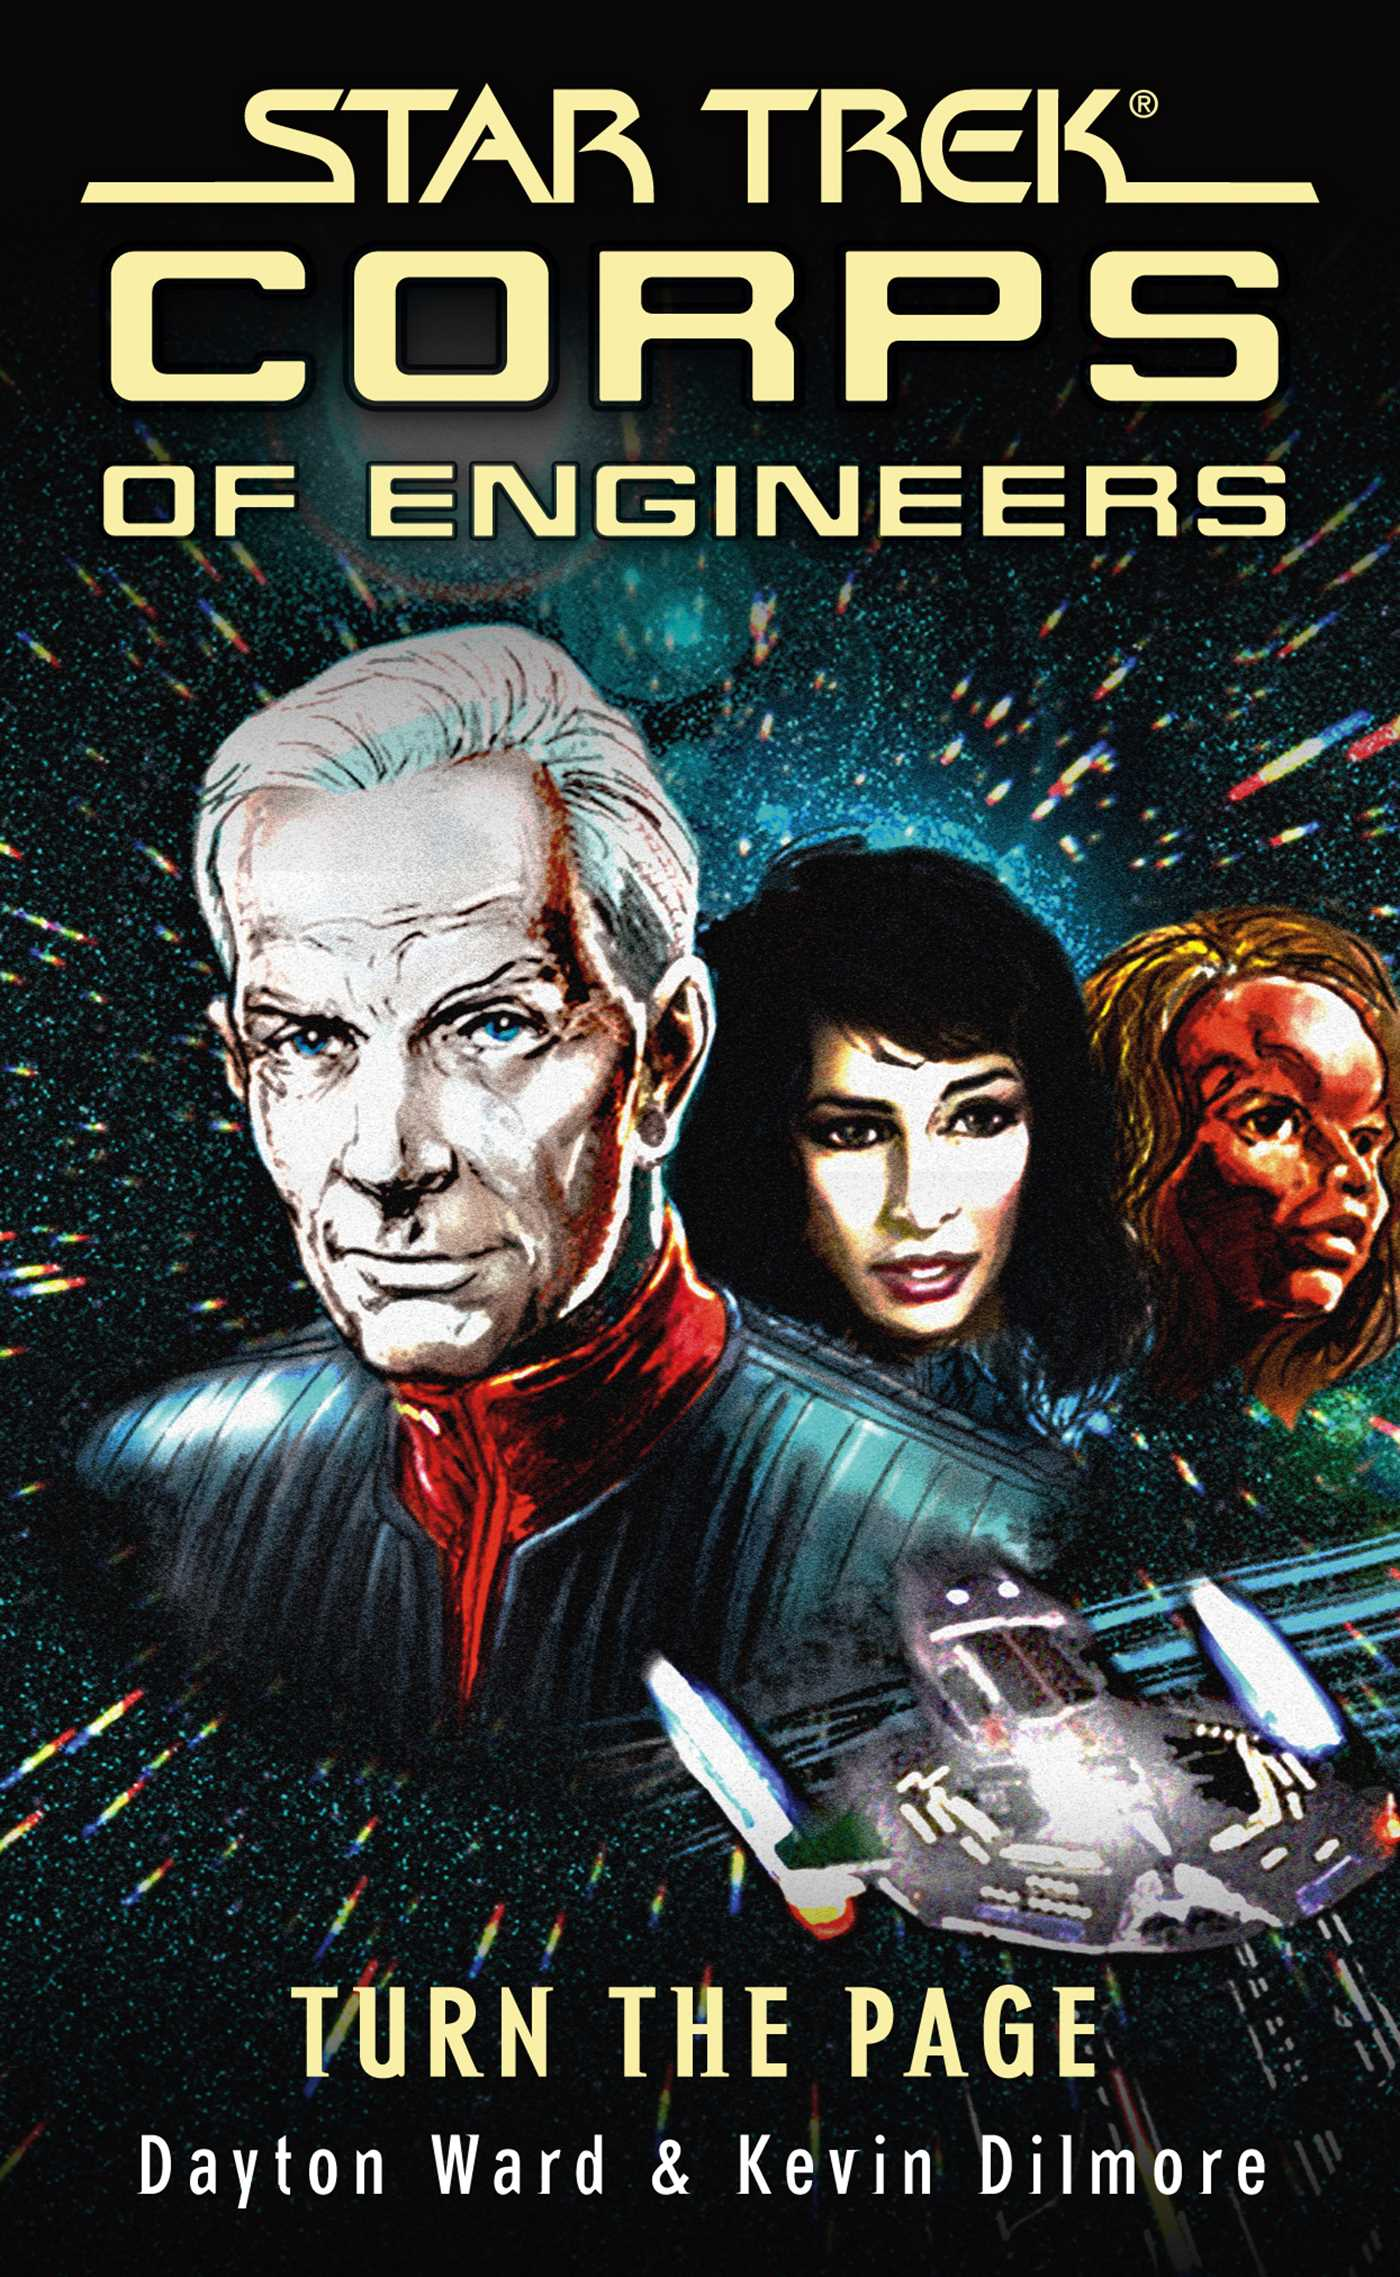 Star trek corps of engineers turn the page 9781416543244 hr